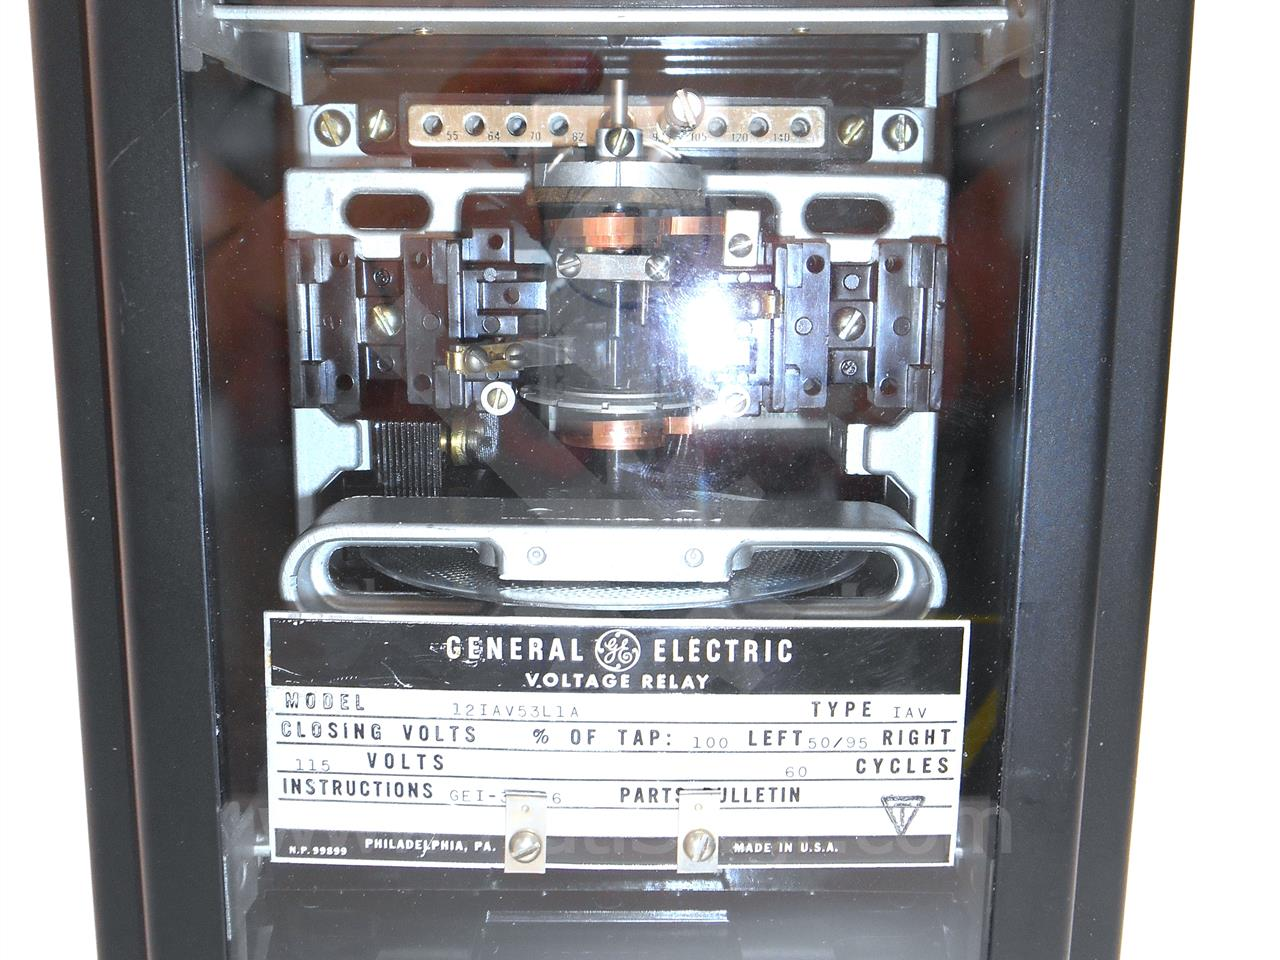 General Electric 12iav53l1a Ge Iav Single Phase Over  Under Voltage Relay